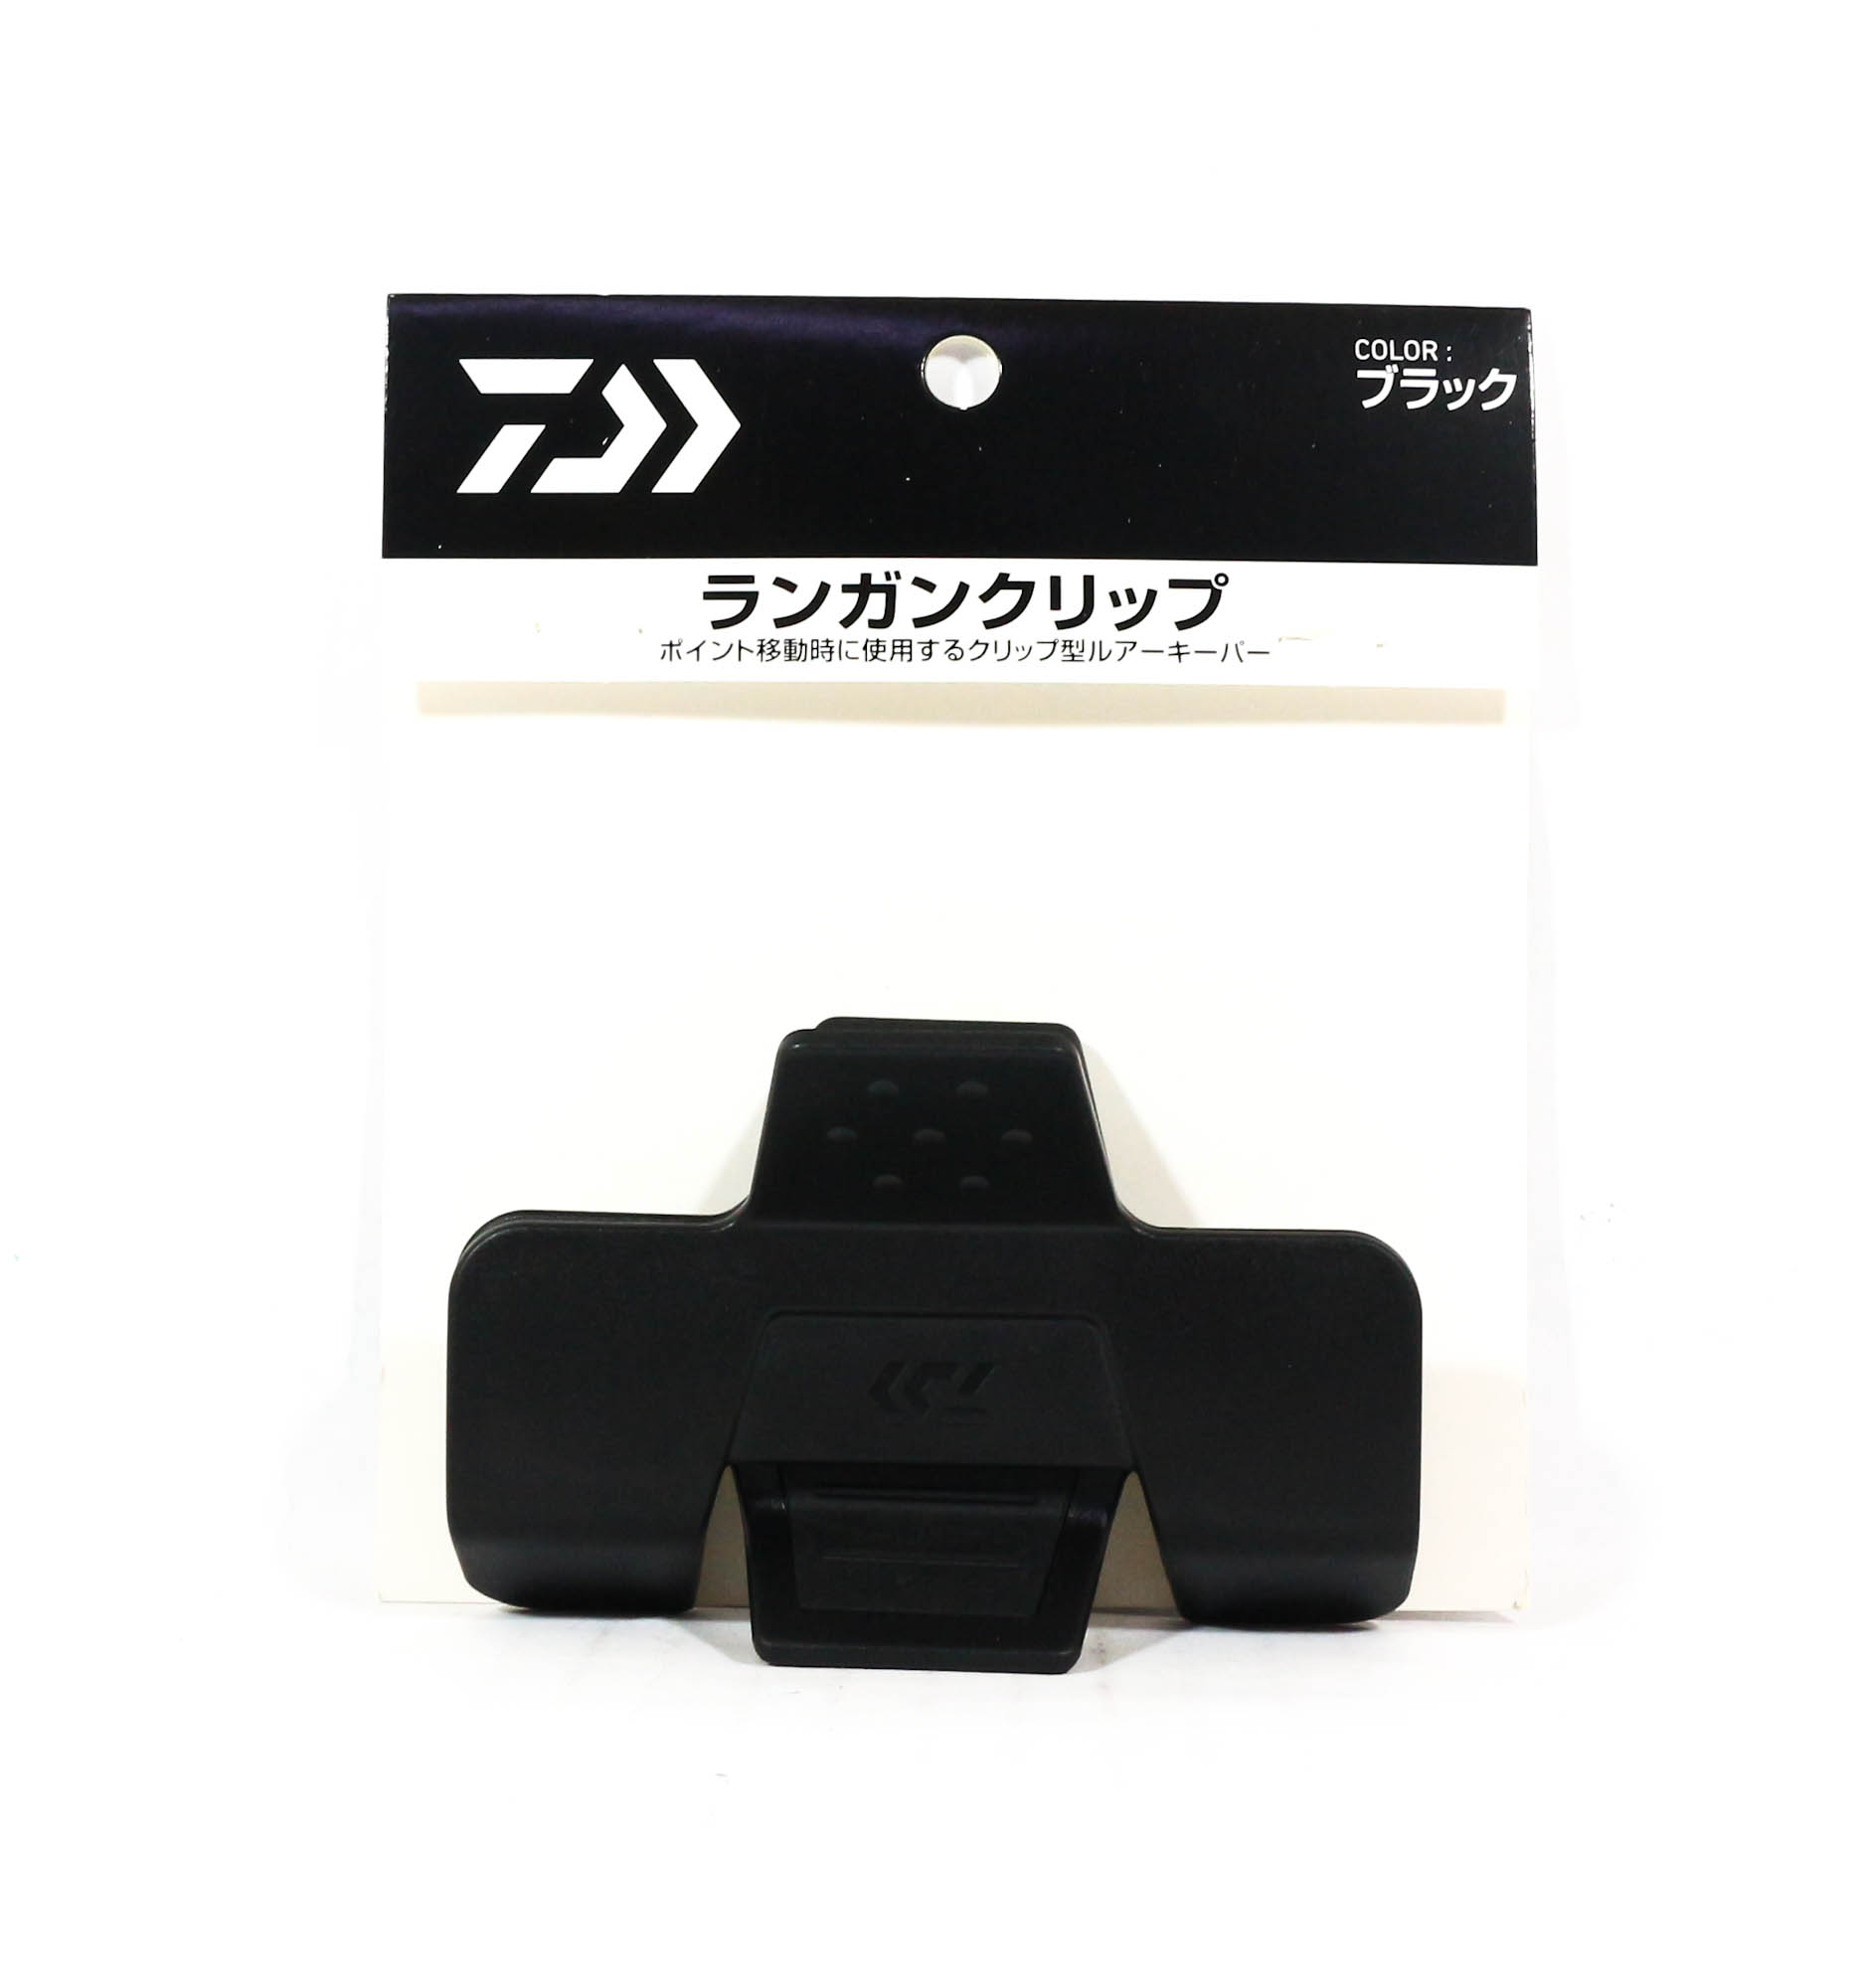 Daiwa Rungun Clip on Safety Lure Holder for Rod 93mm Black (5621)